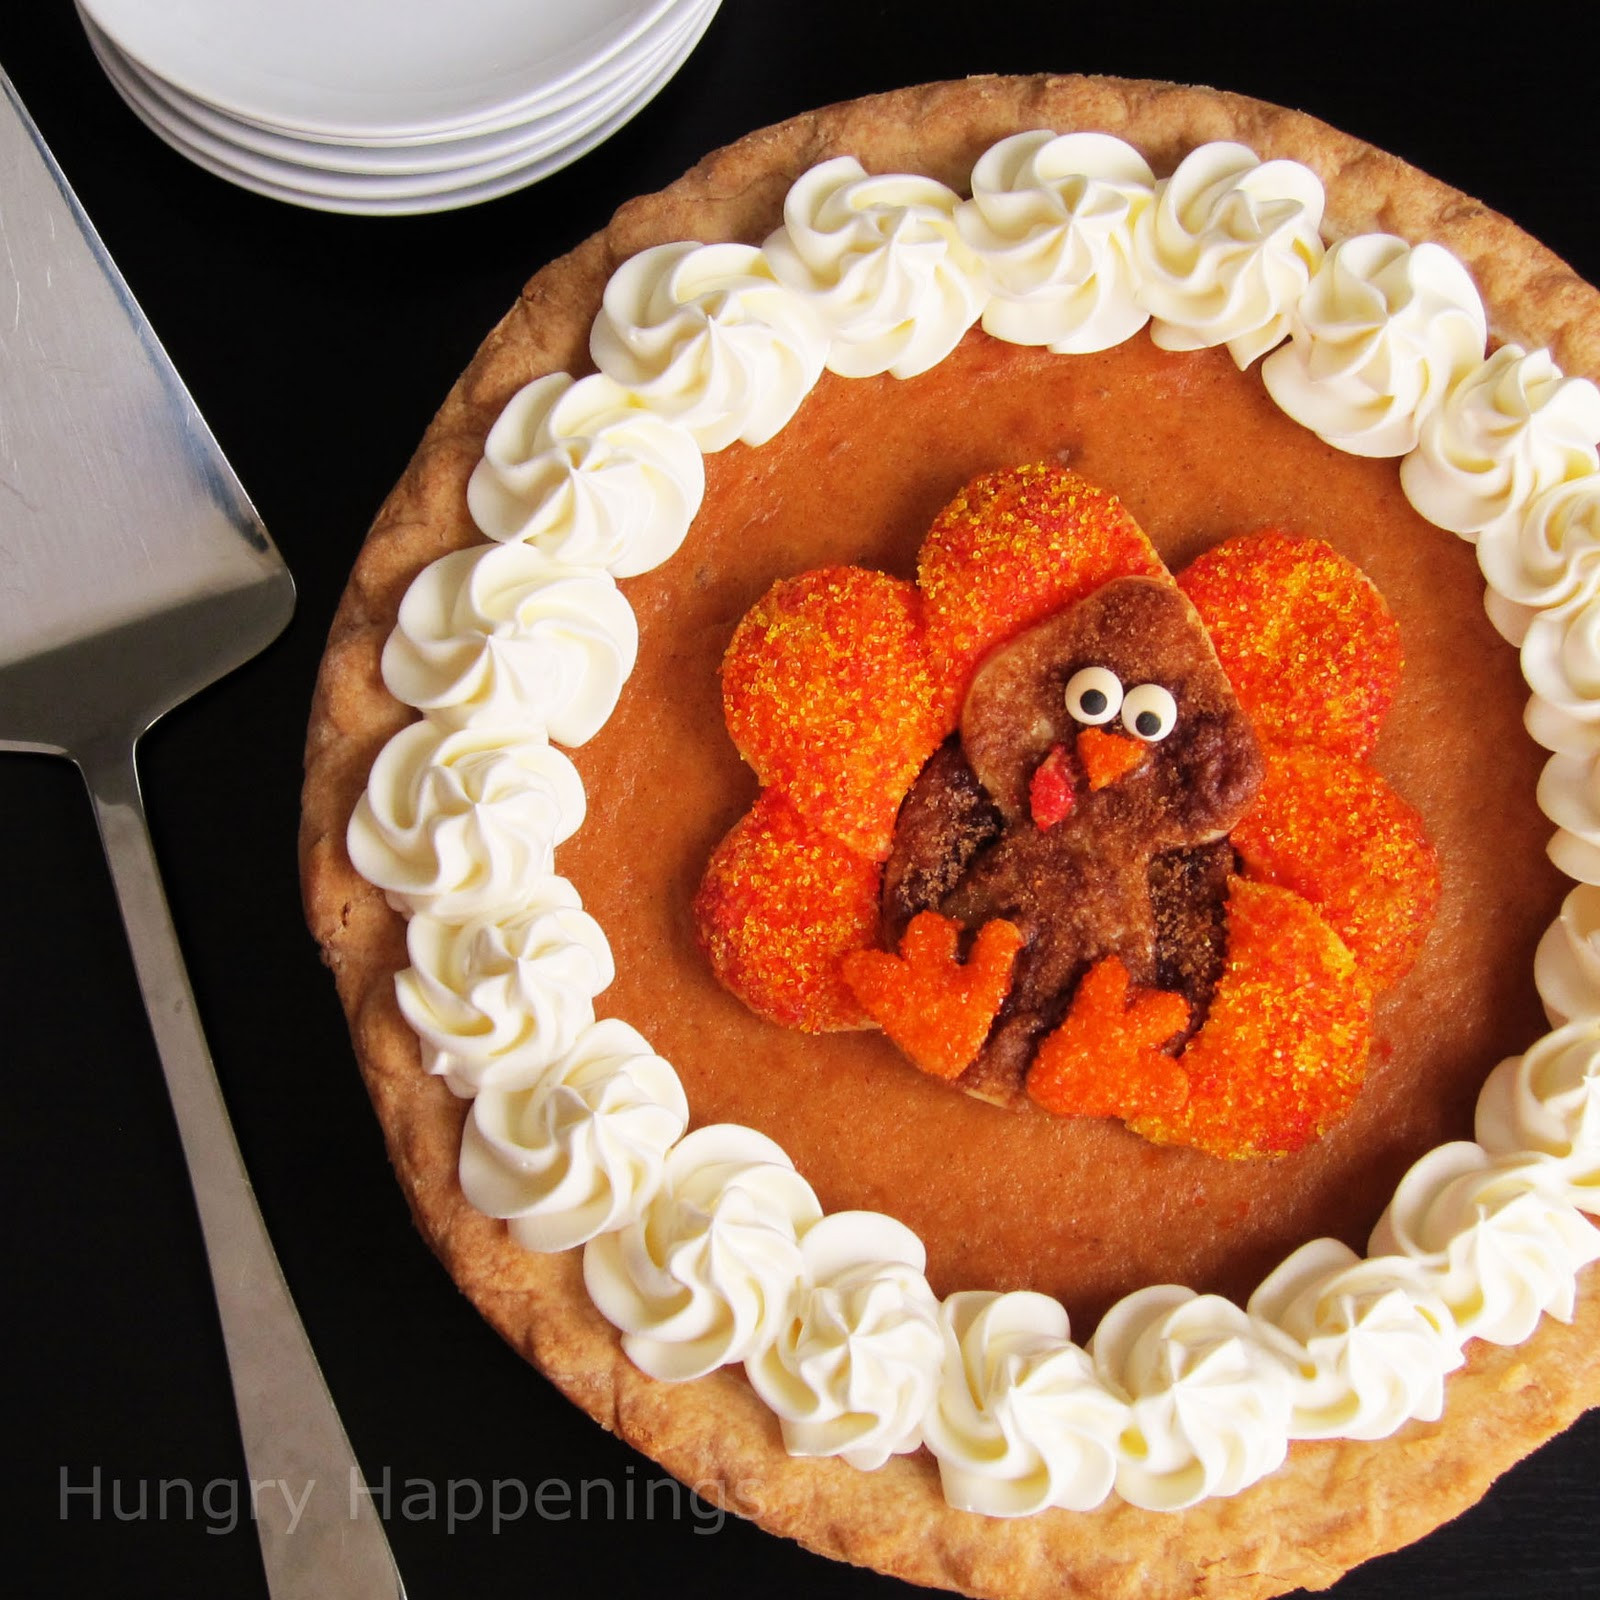 Thanksgiving Pumpkin Pie Recipe  Decorated Pumpkin Pie Festive Thanksgiving Dessert